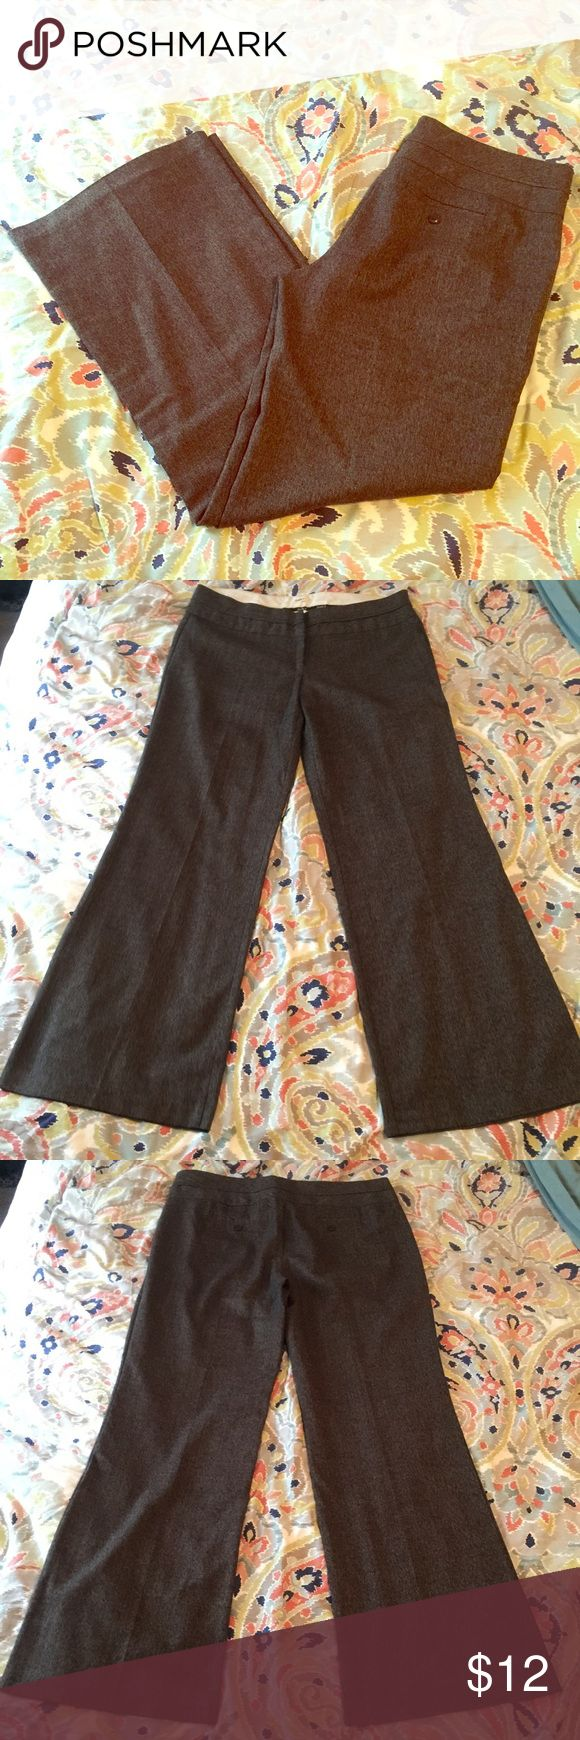 Brown slacks Brown ish slacks. True to size. Worn a handful of times. Still plenty of life left :) Studio Y Pants Boot Cut & Flare